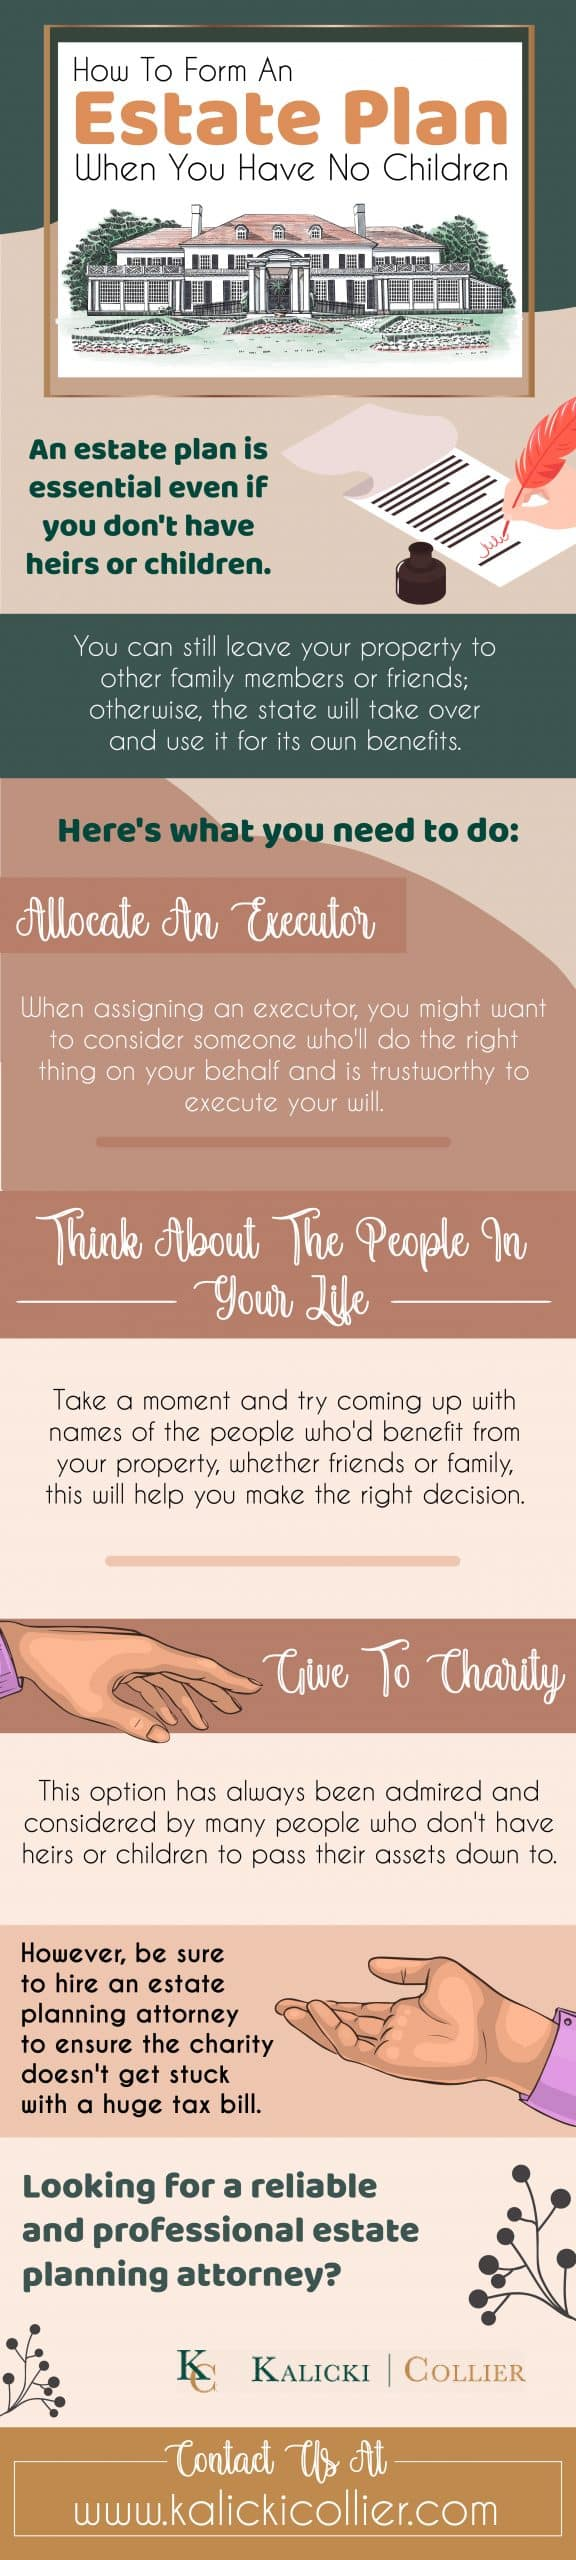 How to form an estate plan when you have no children - Infograph